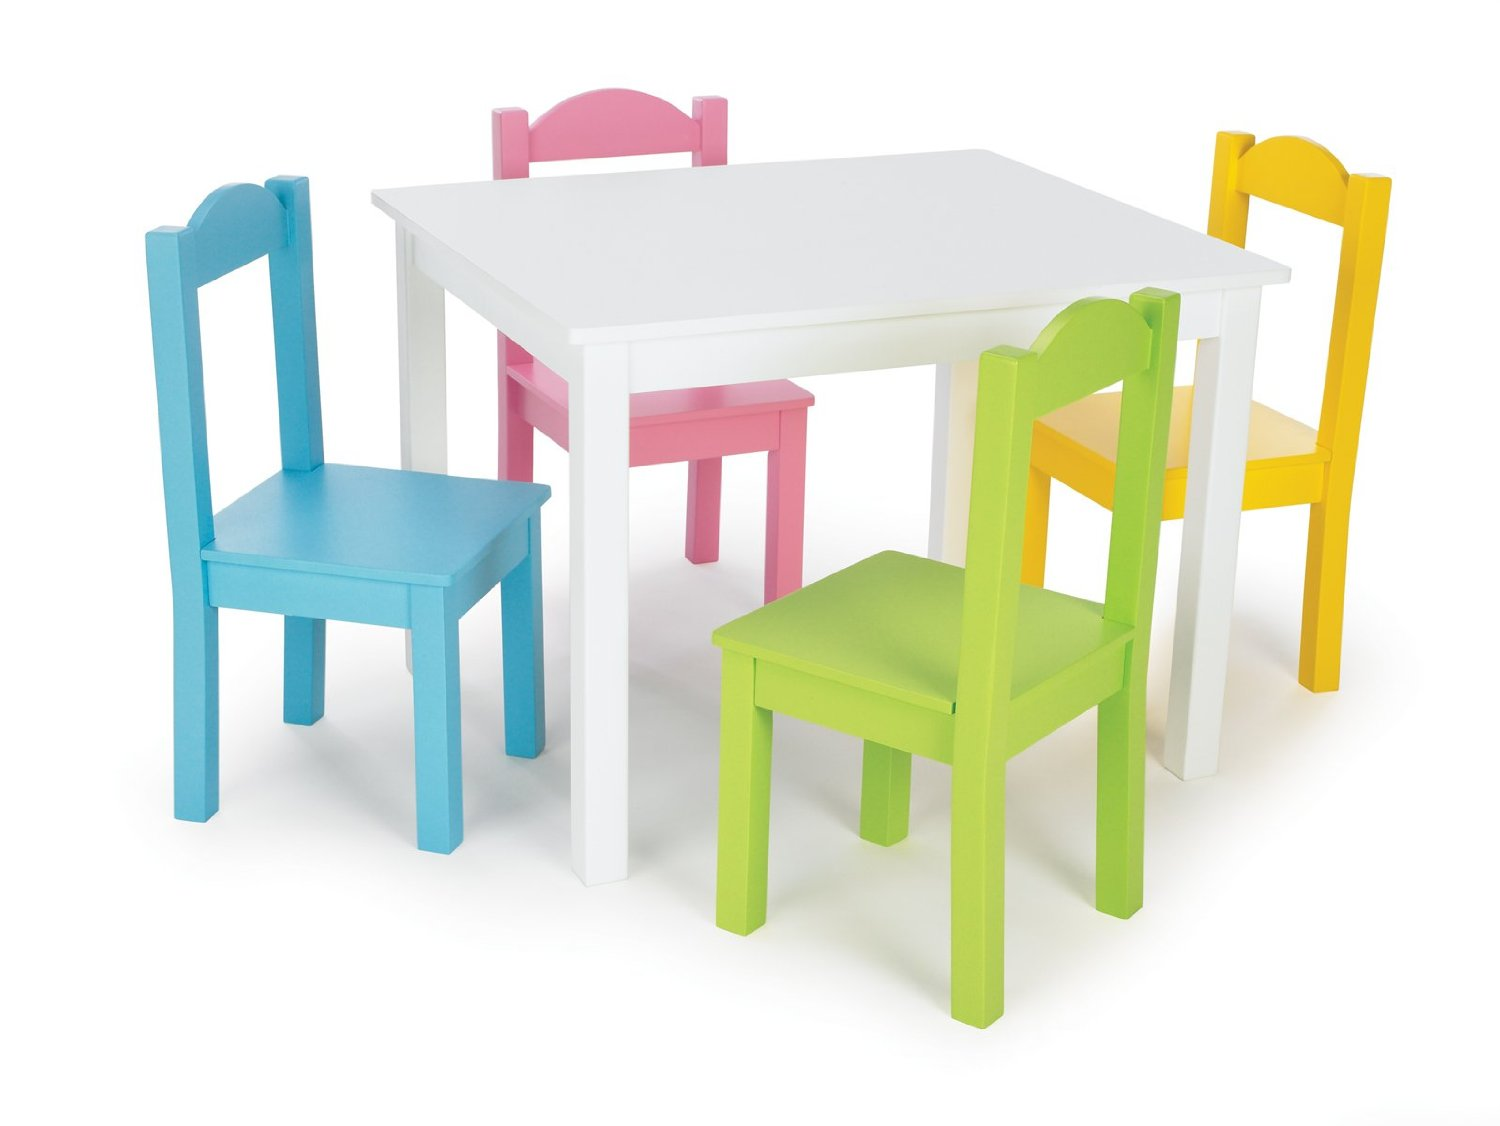 p white summit tutors table kids tables set chairs piece and tot primary chair